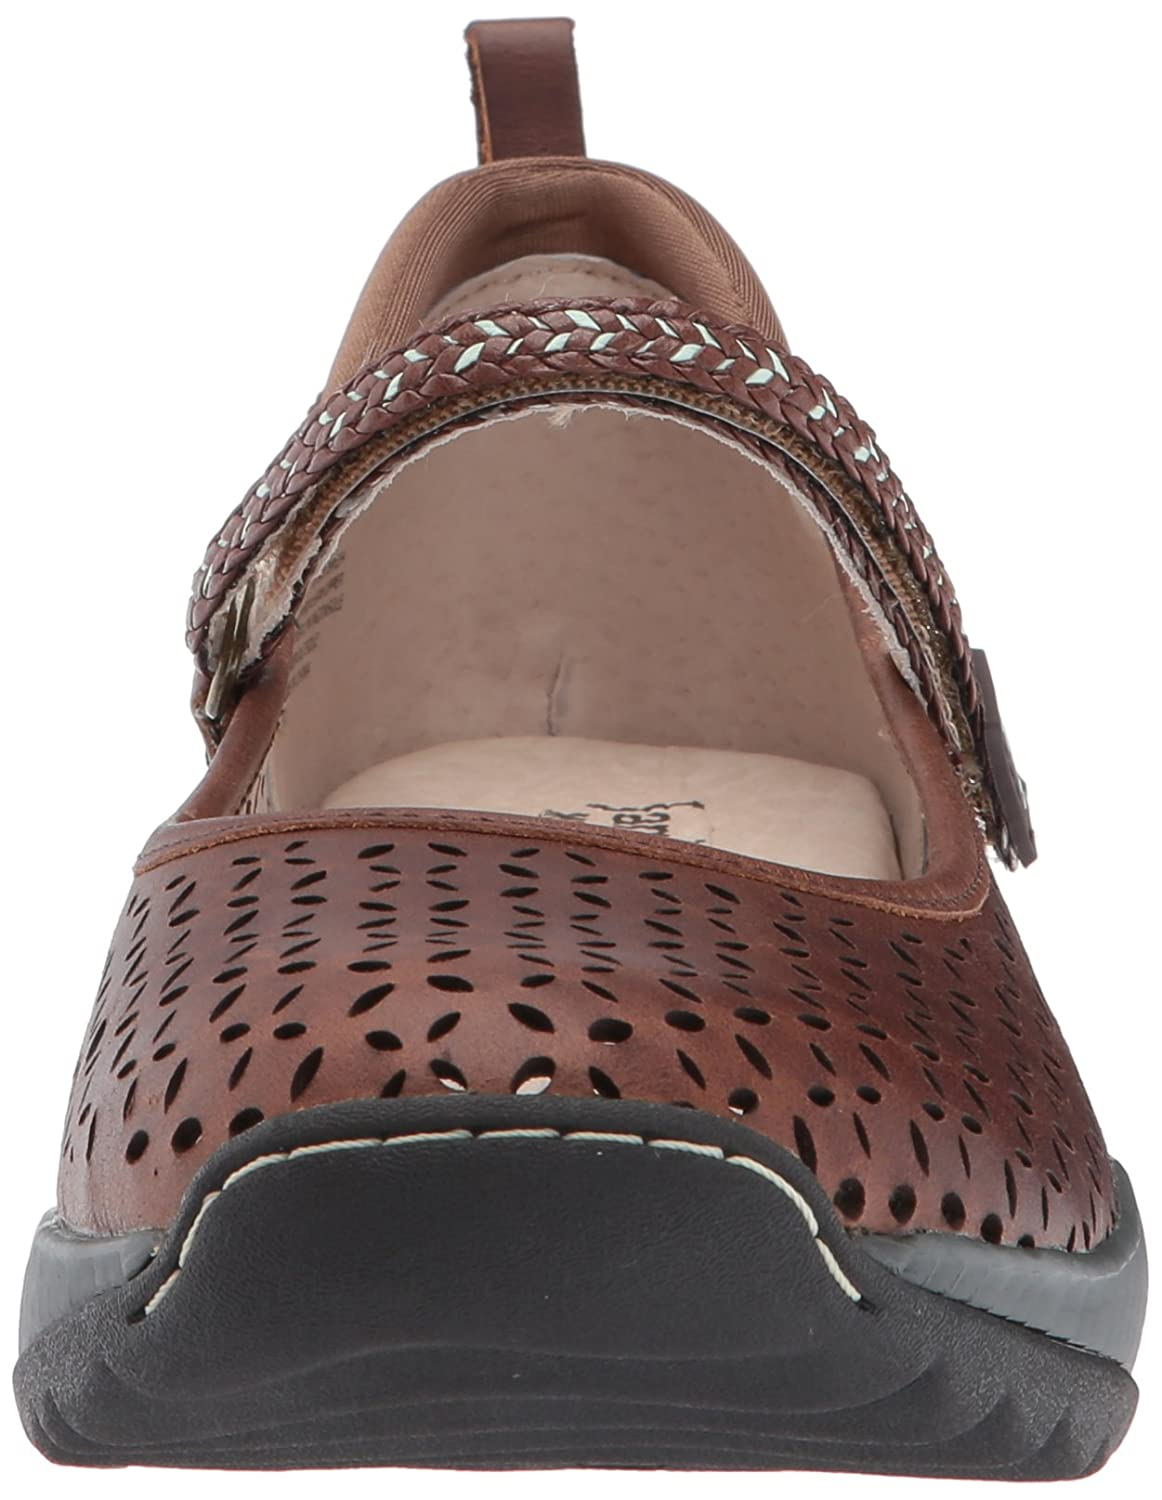 Jambu Women's Bailey Mj Mary Jane Flat Brown B01MYEQW7D 8.5 B(M) US|Antique Brown Flat b97fa0